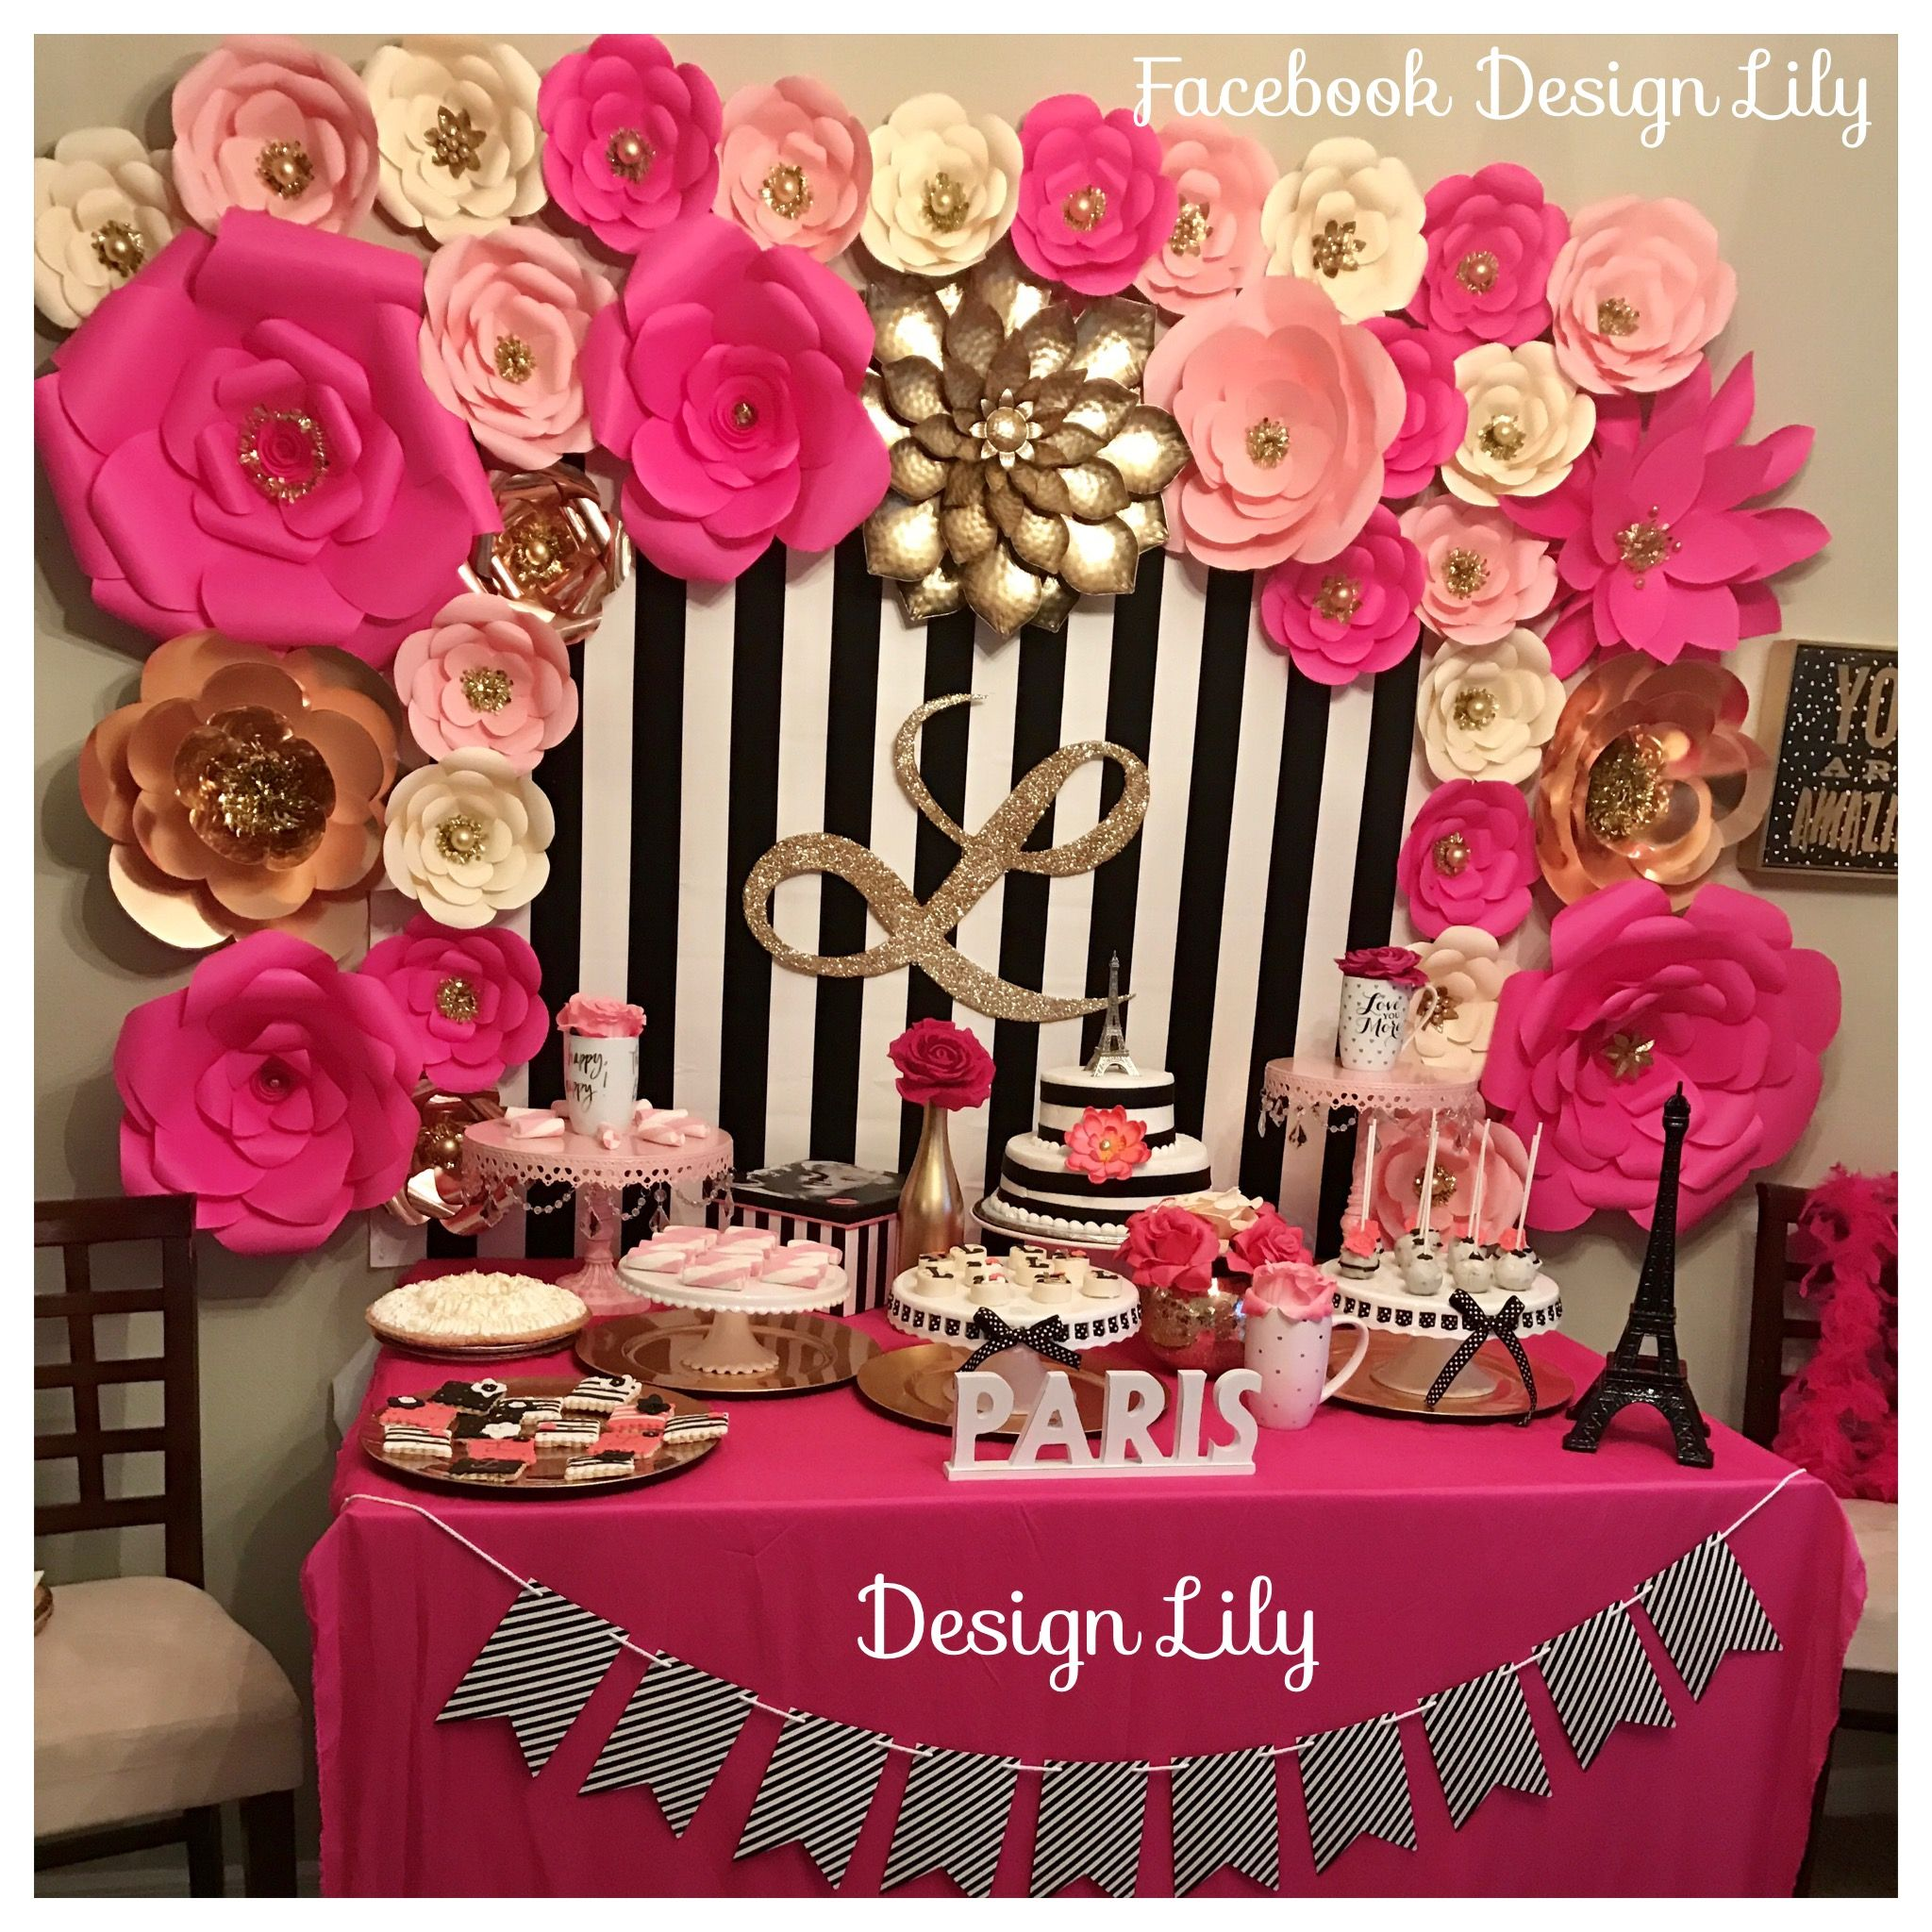 Birthday Decoration: Decorations Kate Spade, White, Black, Pink, Fusia And Gold